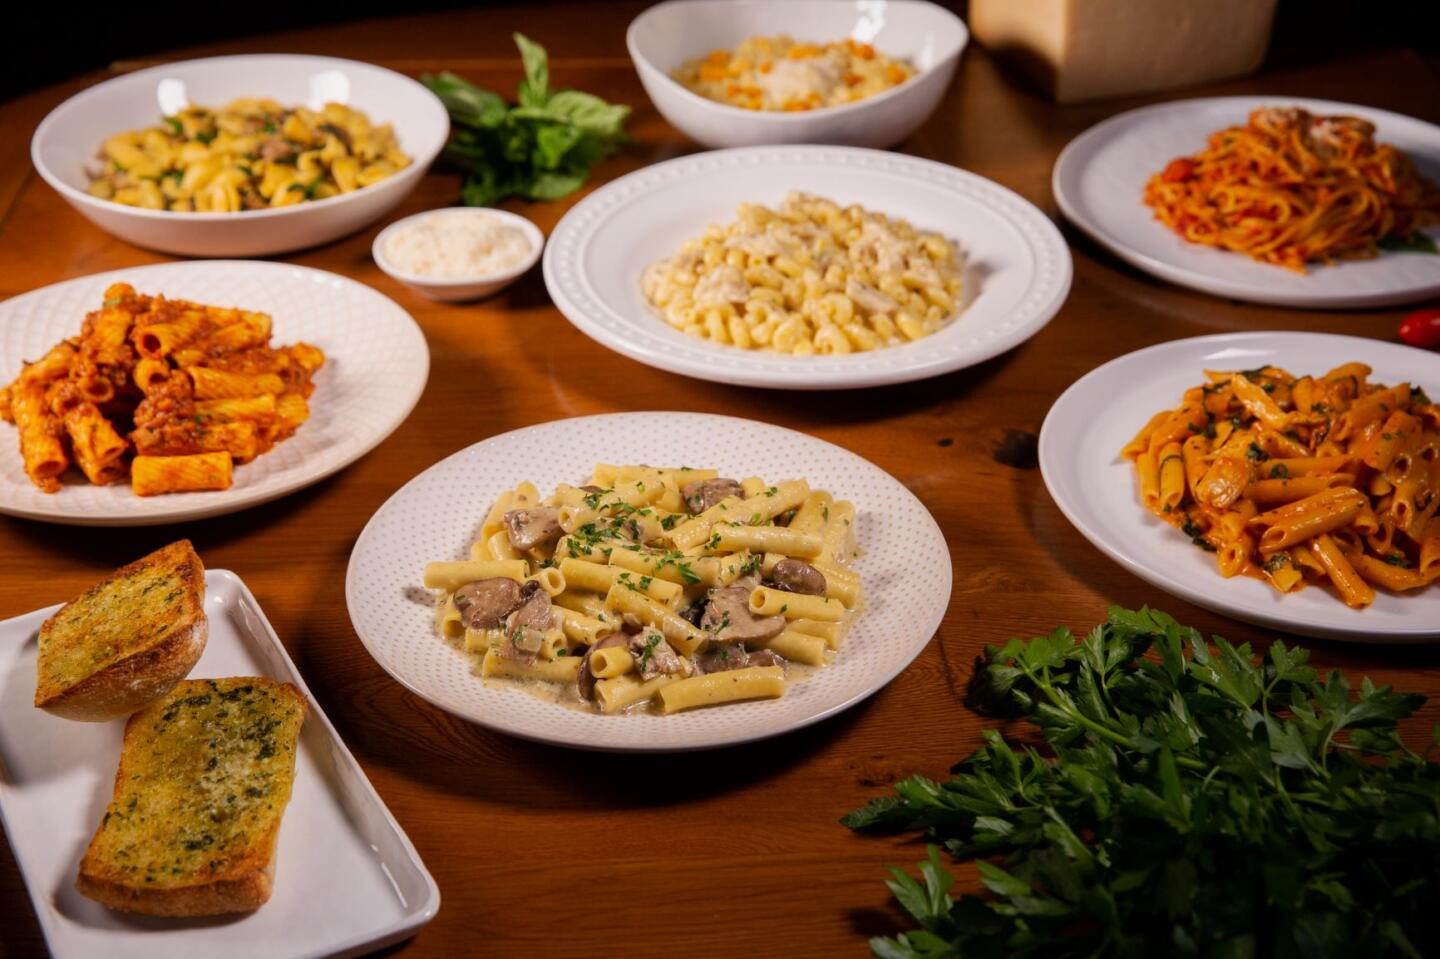 BArilla Pasta dishes